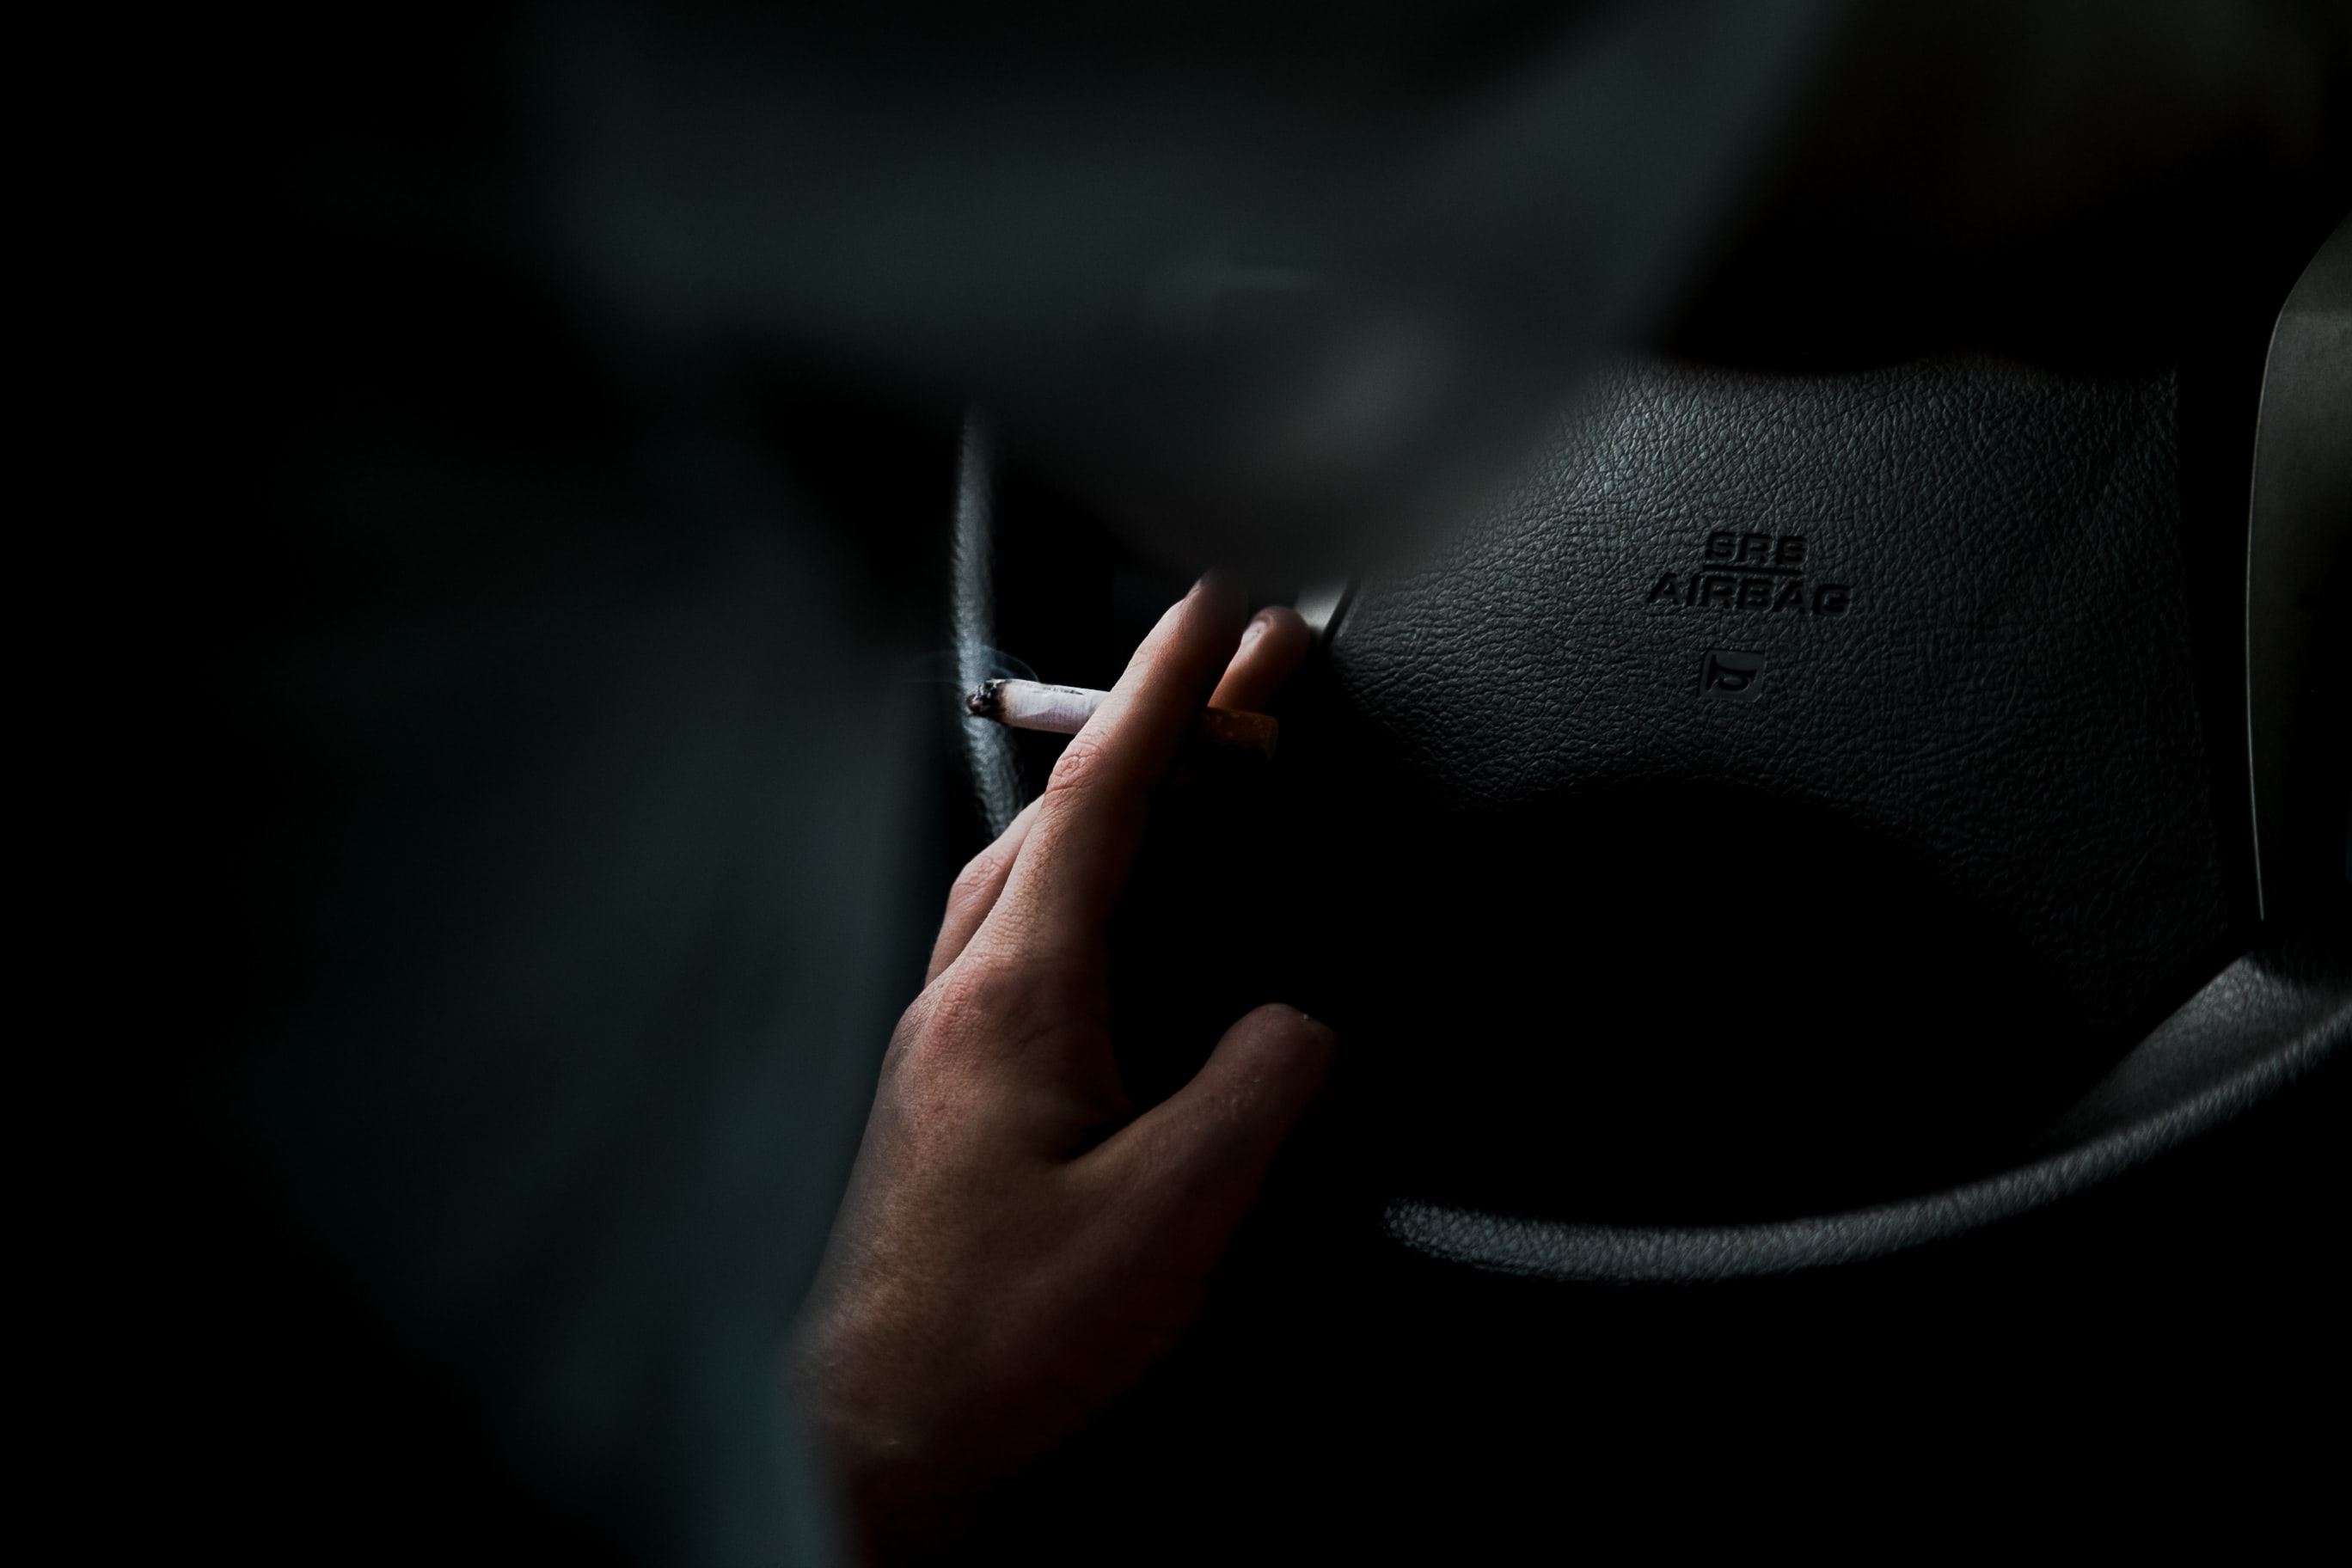 closeup photo of person's left hand on top of vehicle steering wheel while holding lighted cigarette